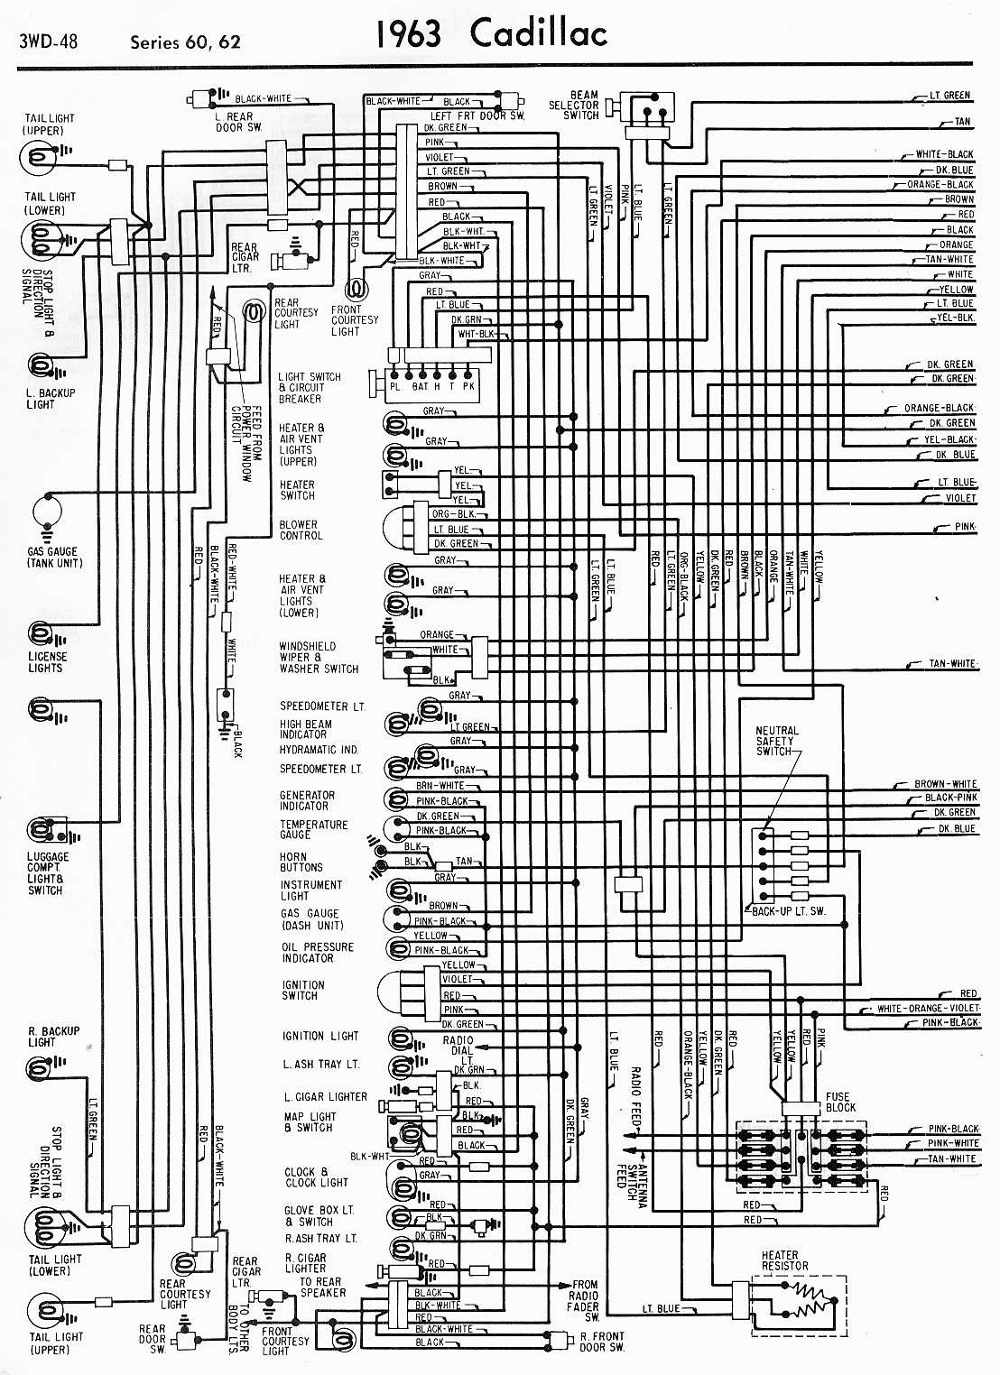 Wiring+Diagrams+schematics+1963+Cadillac+Series+60+And+62+Part+1 wiring diagrams schematics 1963 cadillac series 60 and 62 part 1